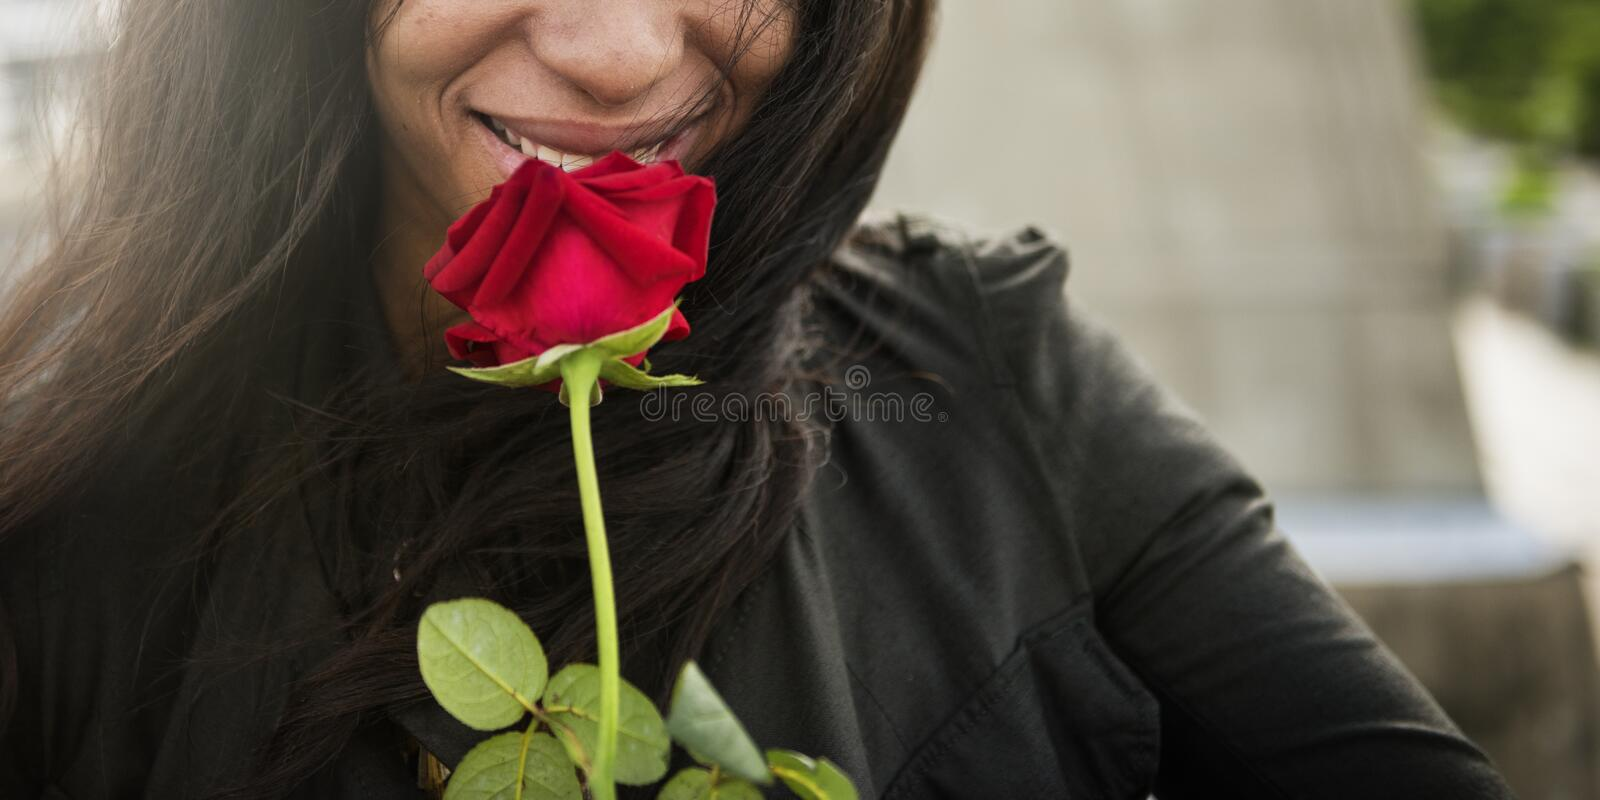 African Woman Rose Flower Love Passion Valentine Concept stock photo